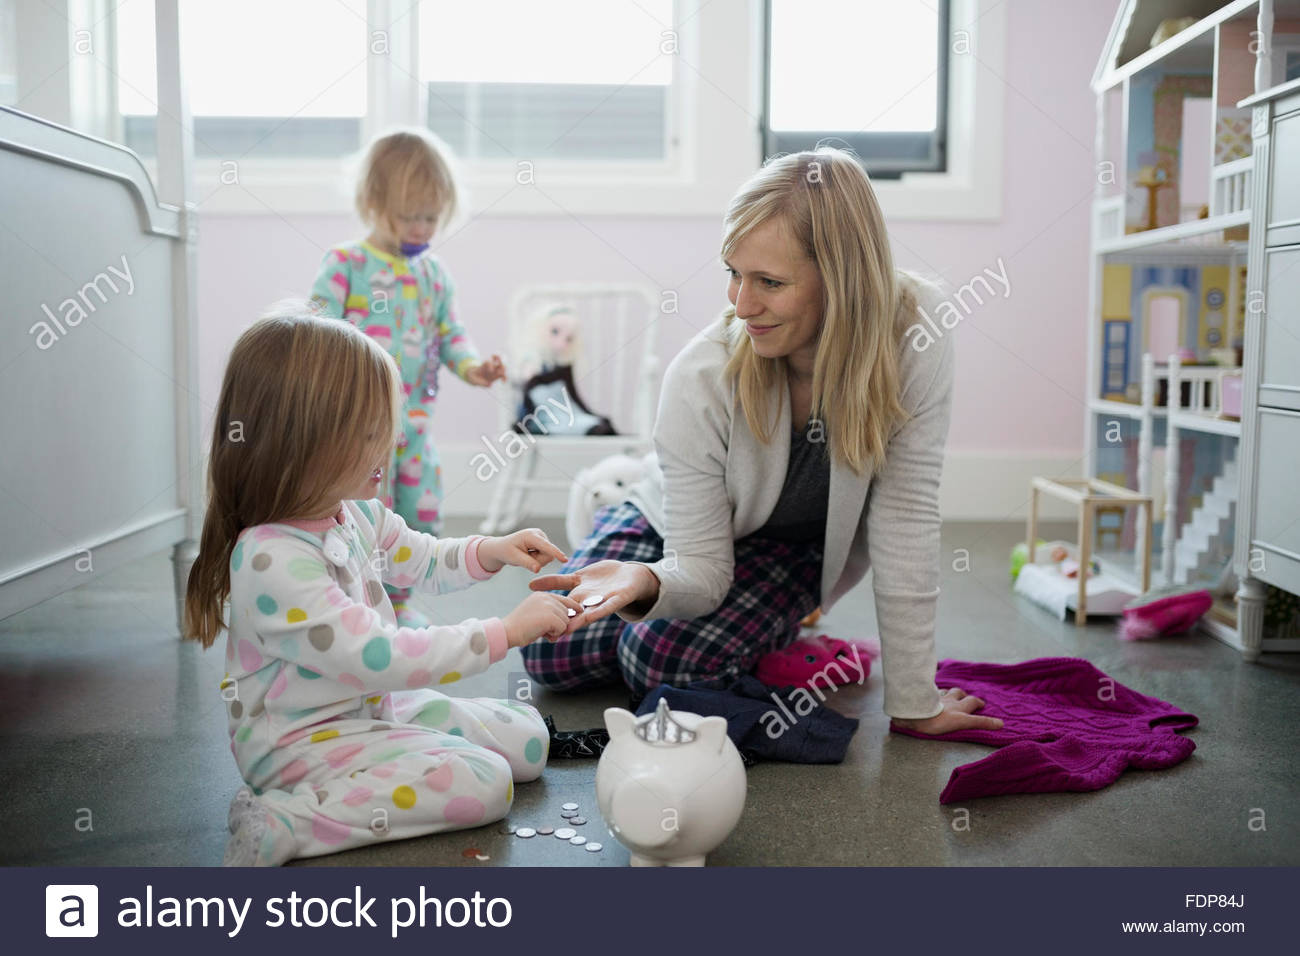 Mother and daughter placing coins in piggy bank - Stock Image